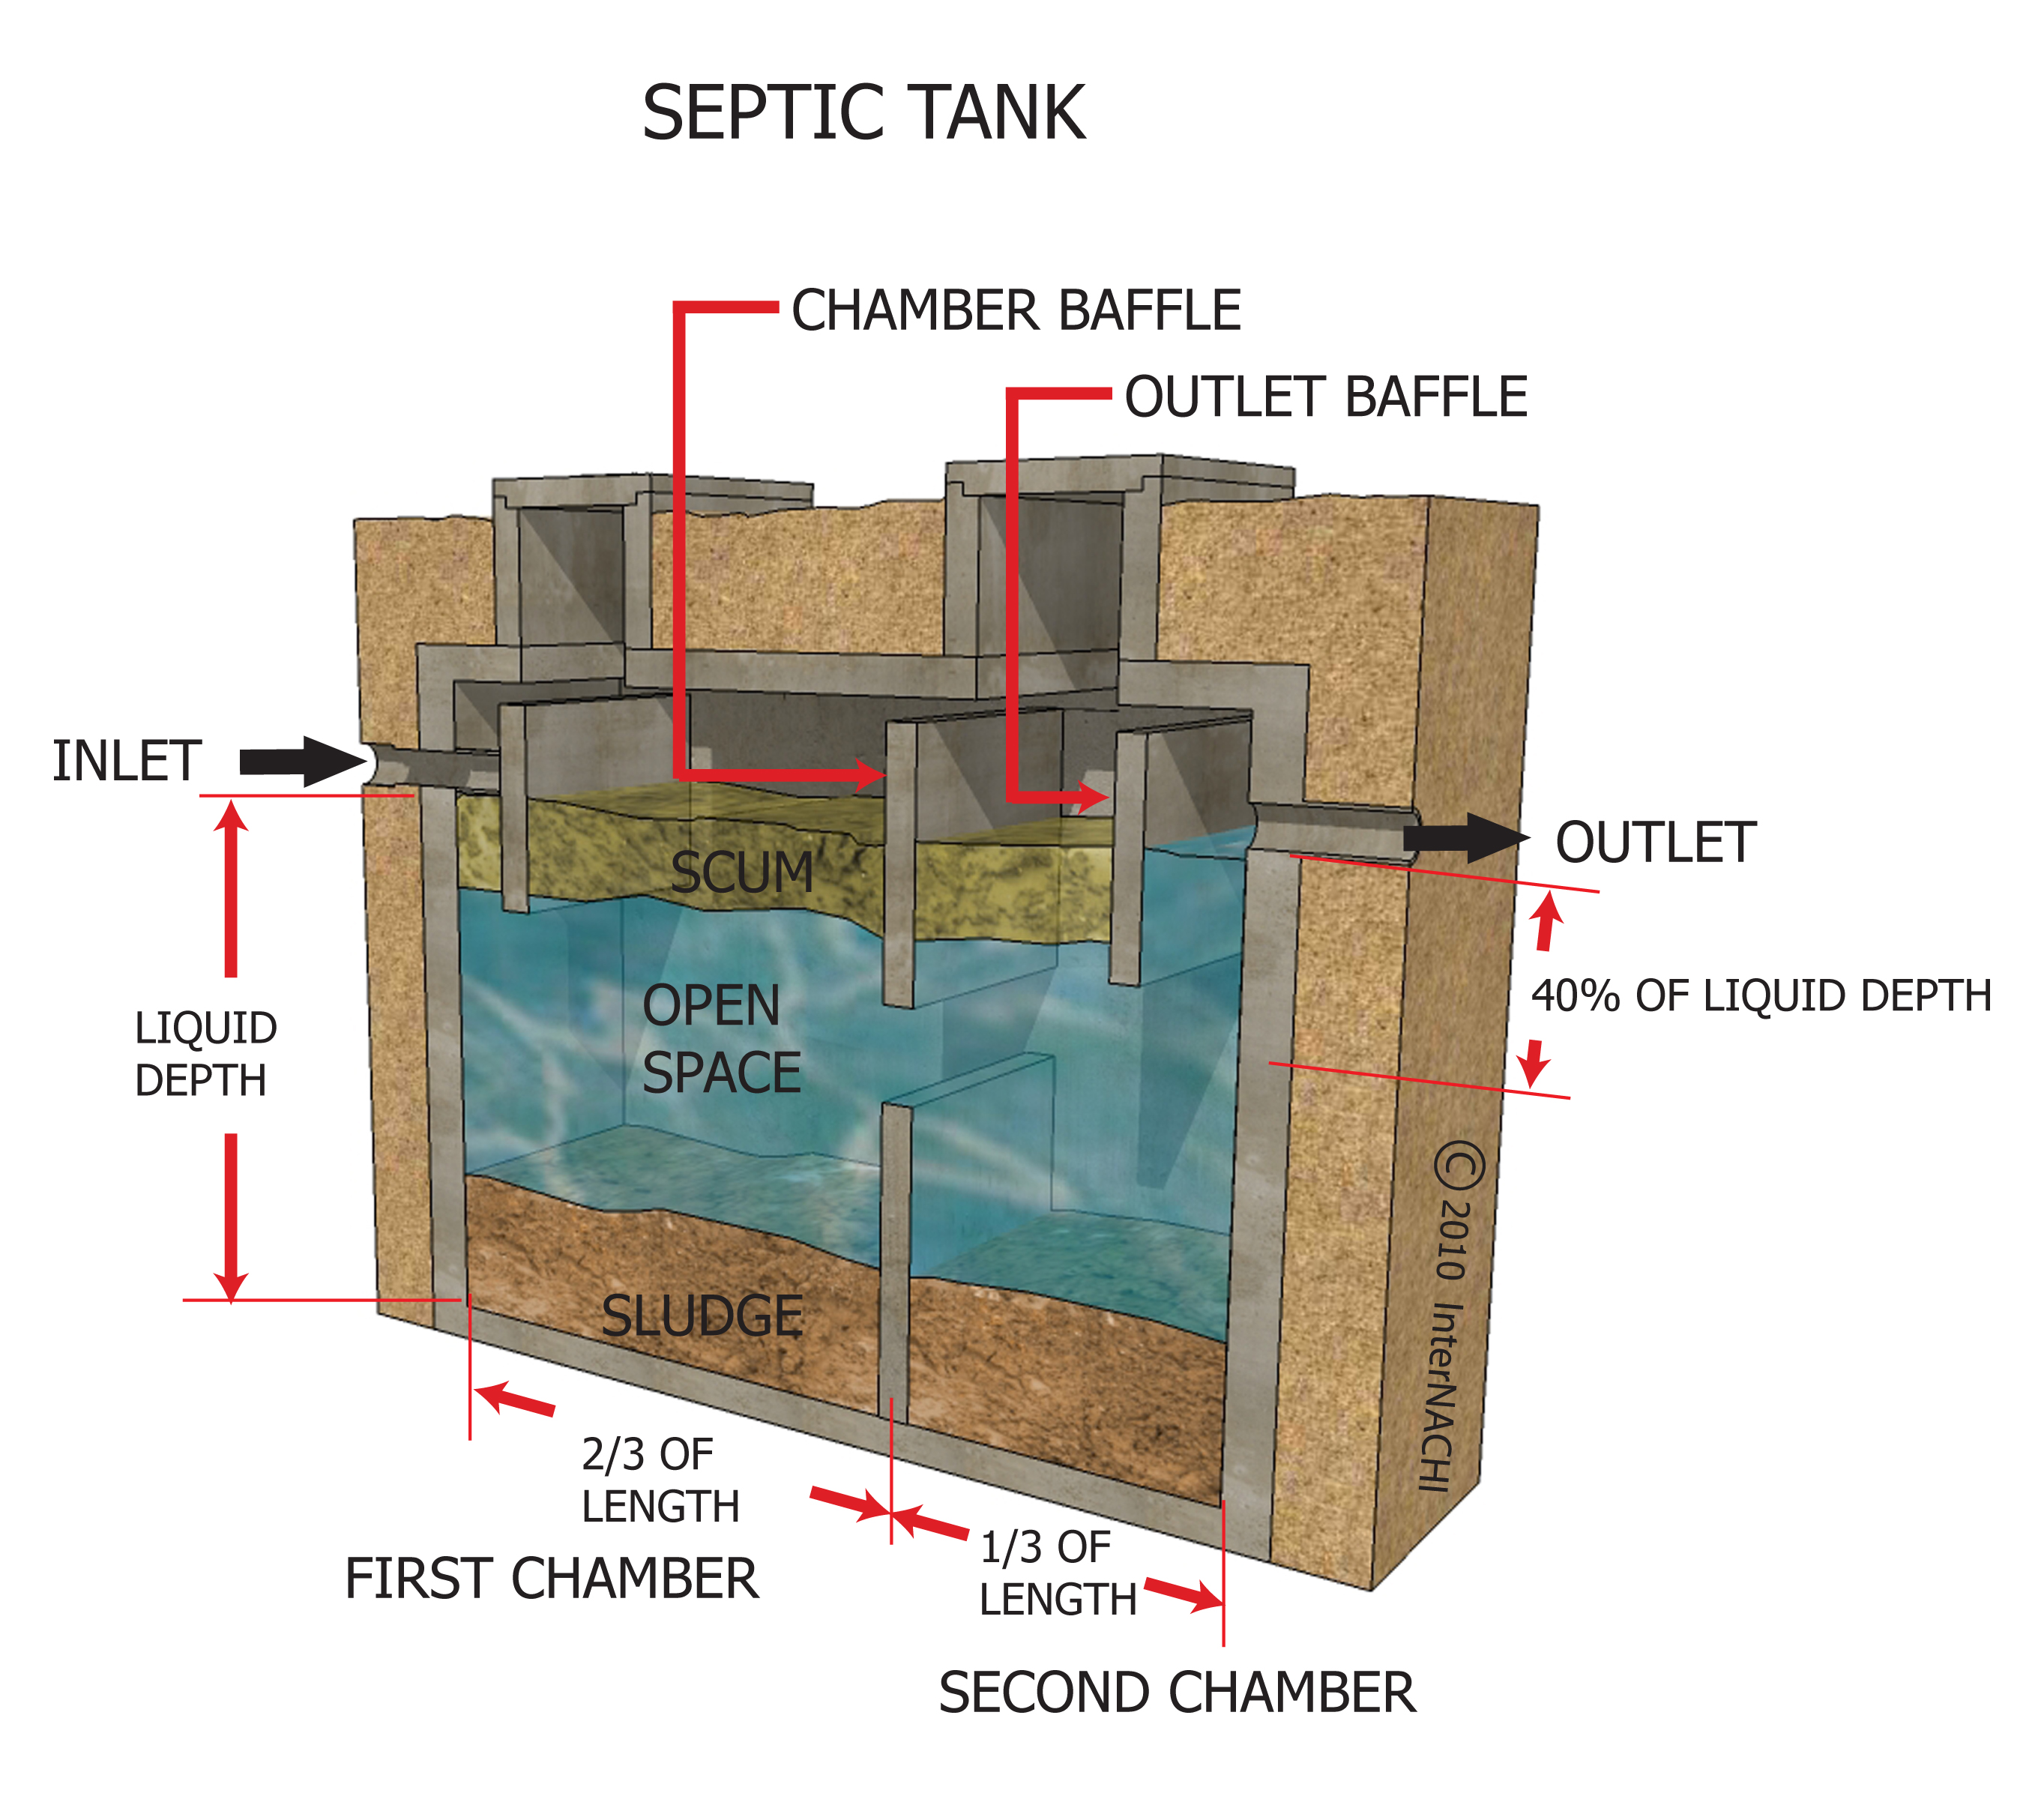 How To Inspect Septic Systems Page 62 Internachi